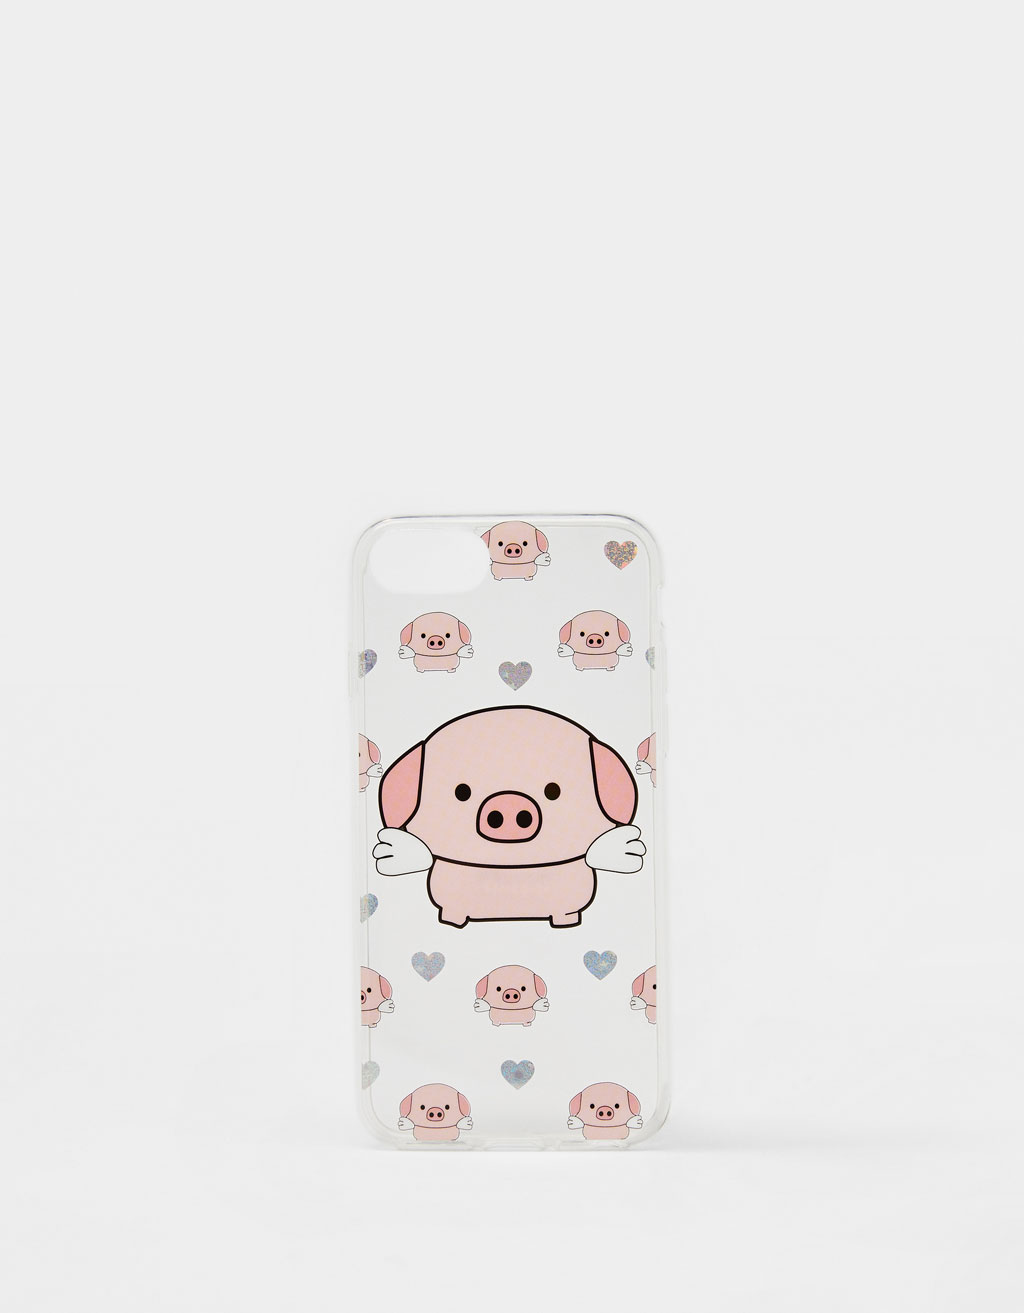 Handyhülle Little Pig für iPhone 6 / 6s / 7 / 8